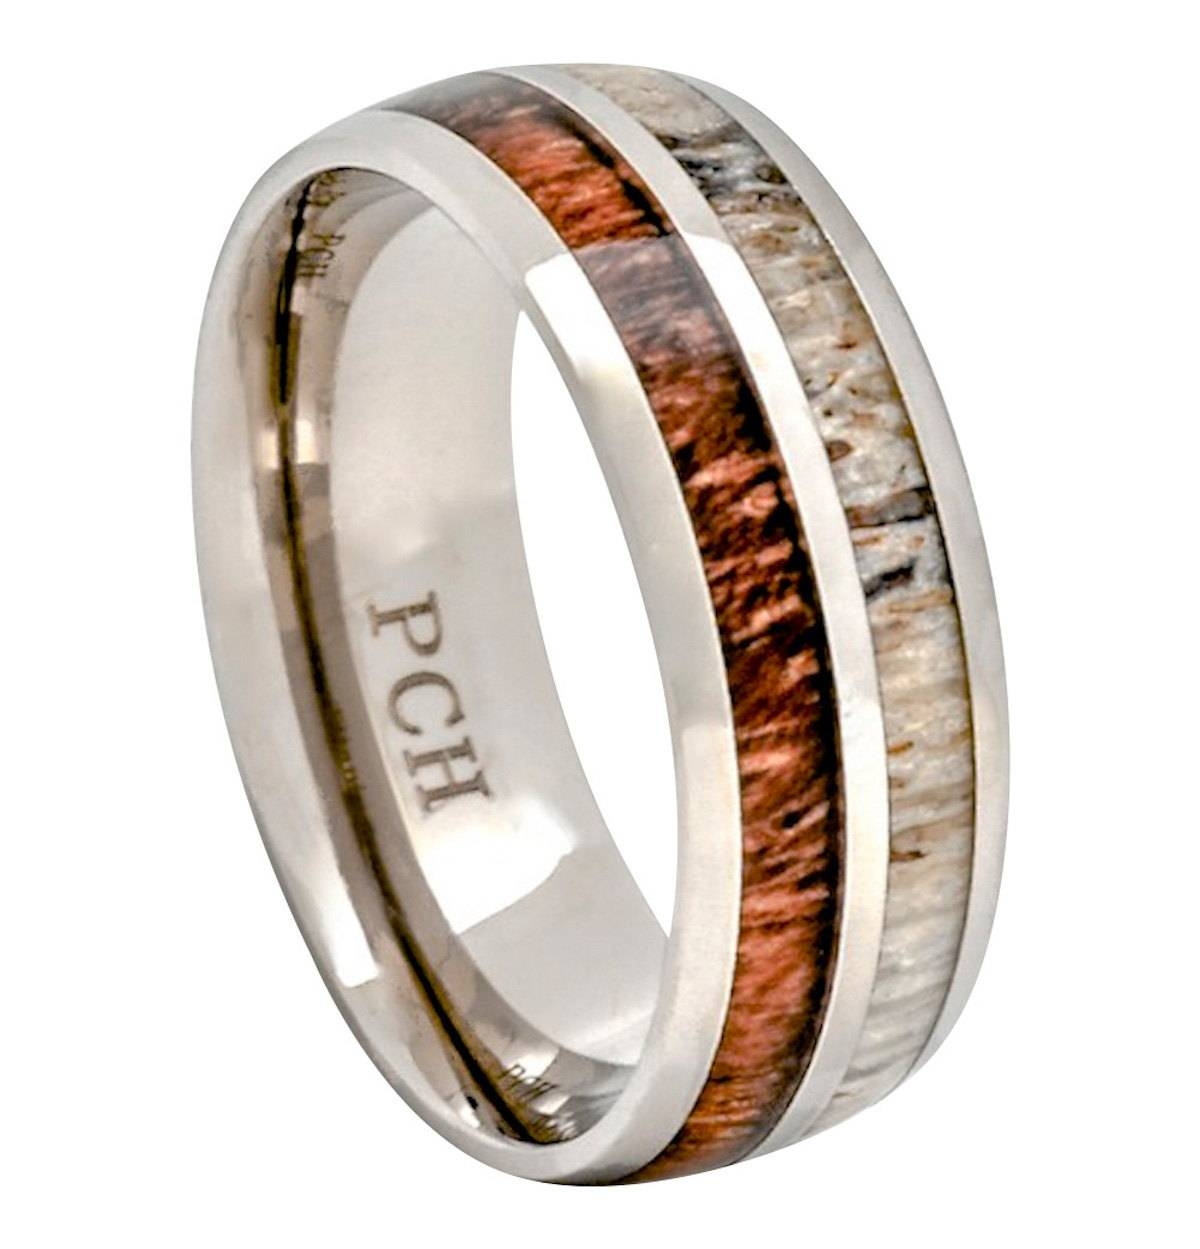 Deer Antler Koa Wood Ring Titanium Mens Wedding Band Comfort Intended For Mens Wedding Bands With Deer Antlers (View 4 of 15)